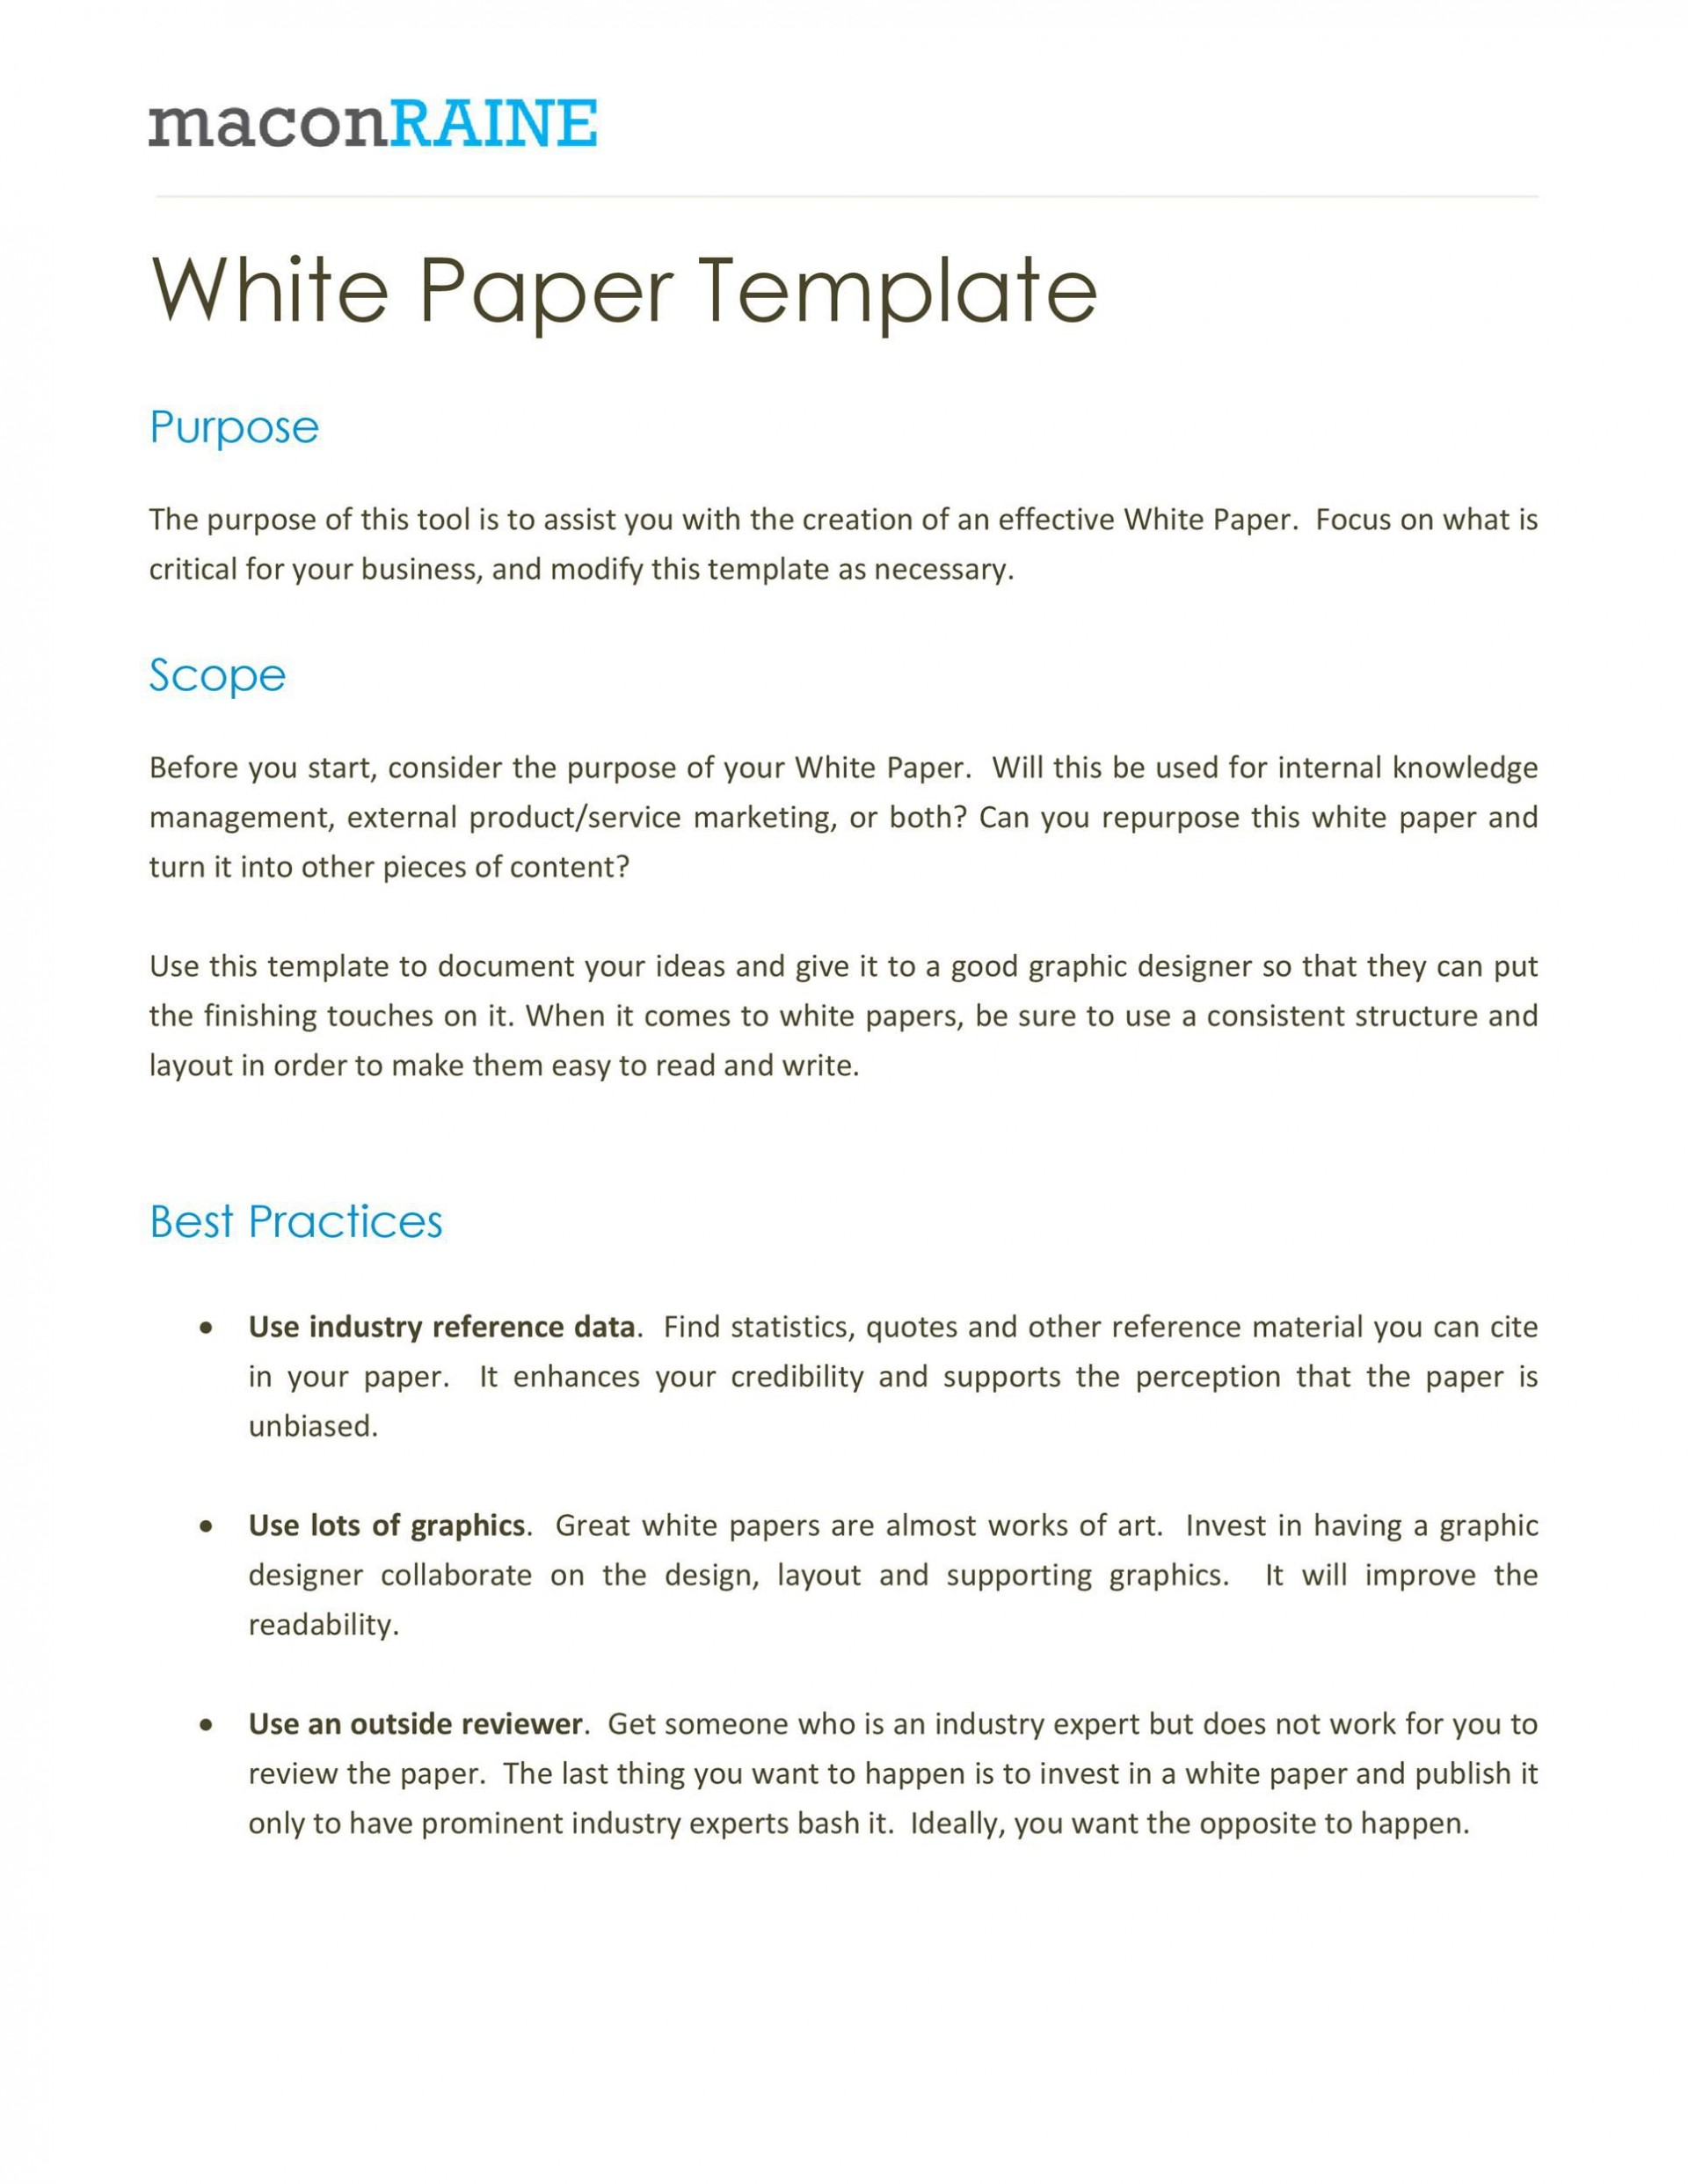 006 Amazing Free White Paper Template Image  Word 2016 Indesign Microsoft1920